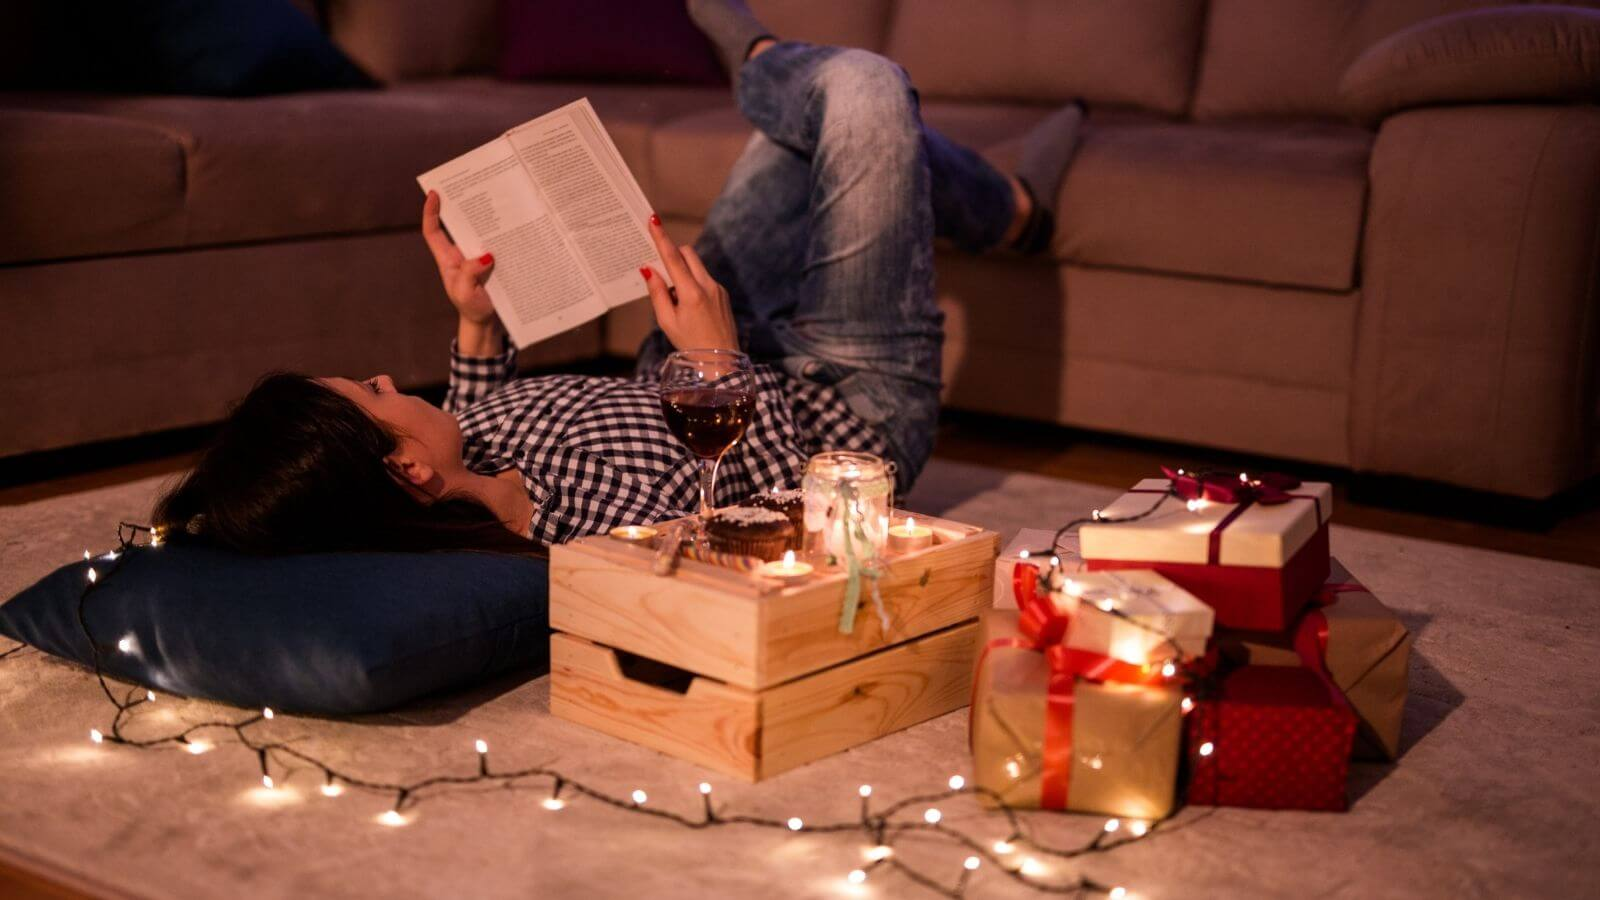 Woman relaxing at Christmas time with book, wine & candles